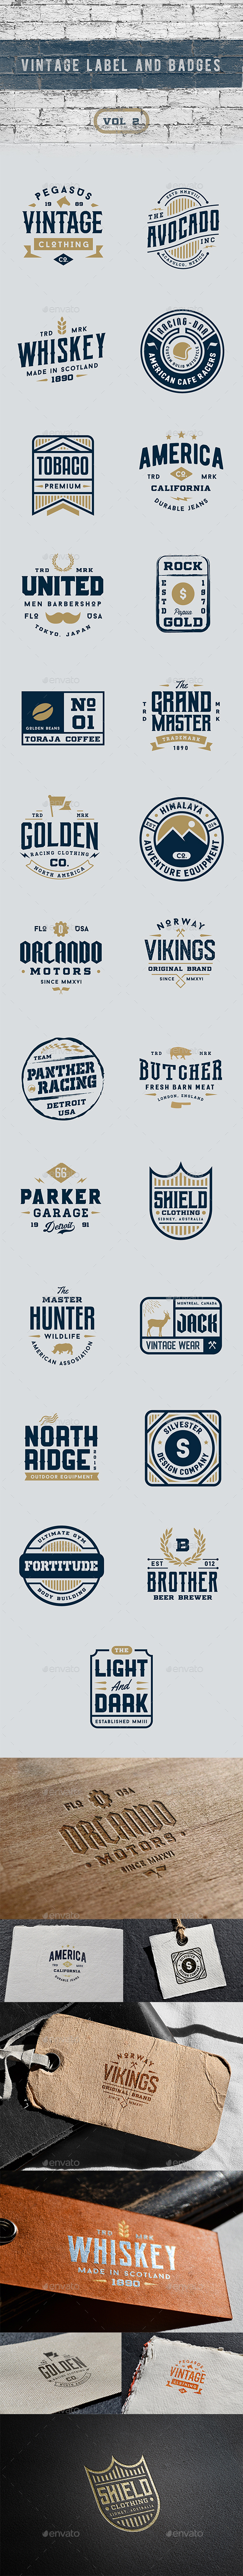 Vintage Label and Badges Vol 2 - Badges & Stickers Web Elements